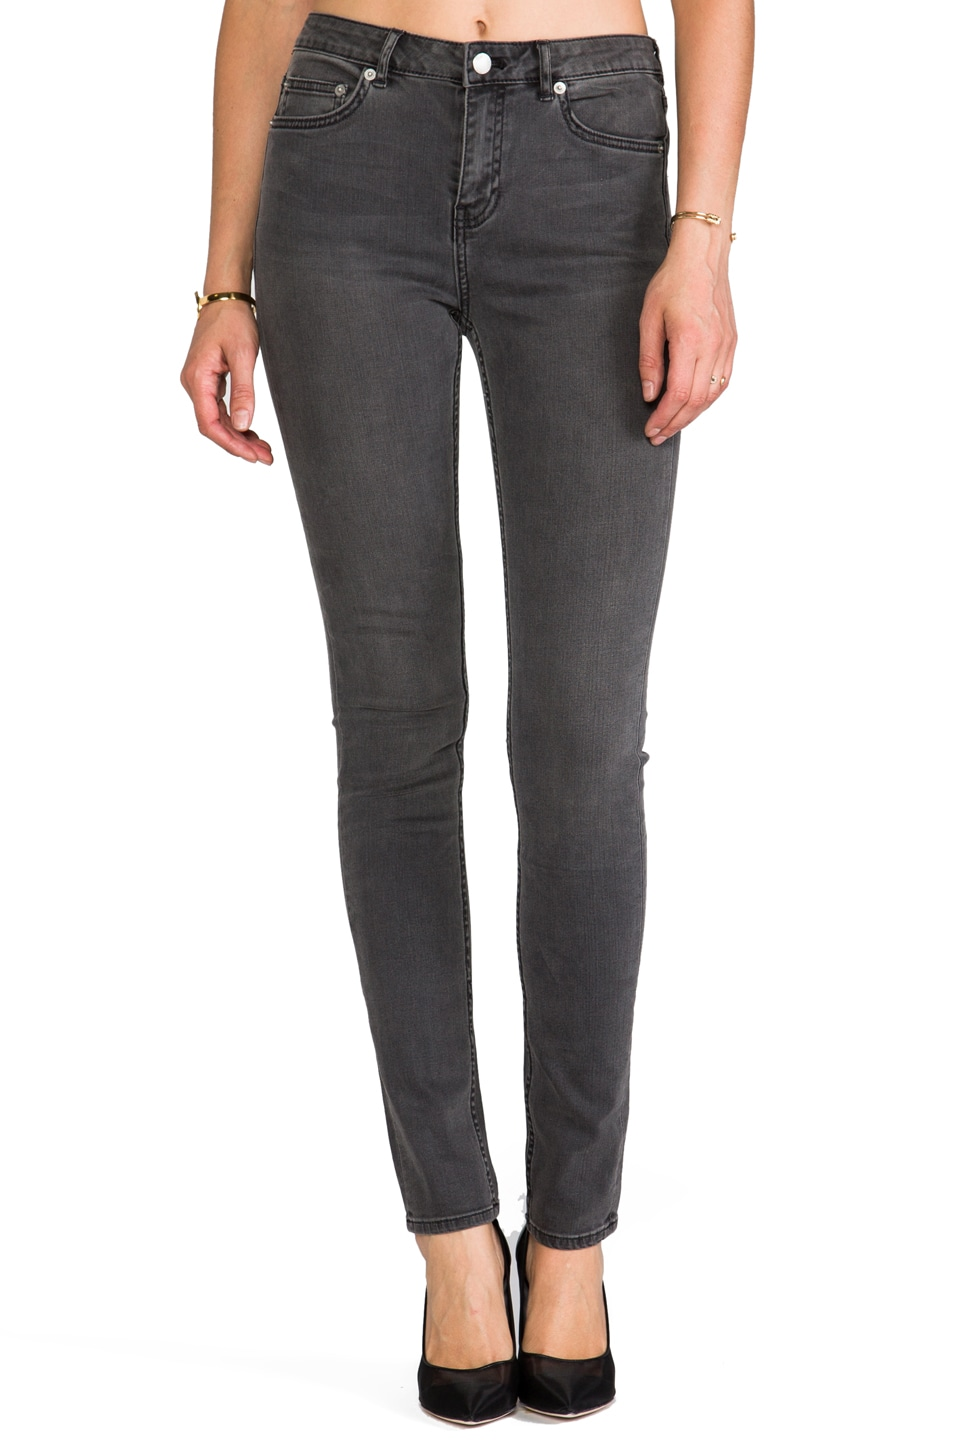 BLK DNM Jeans 22 in Staple Grey